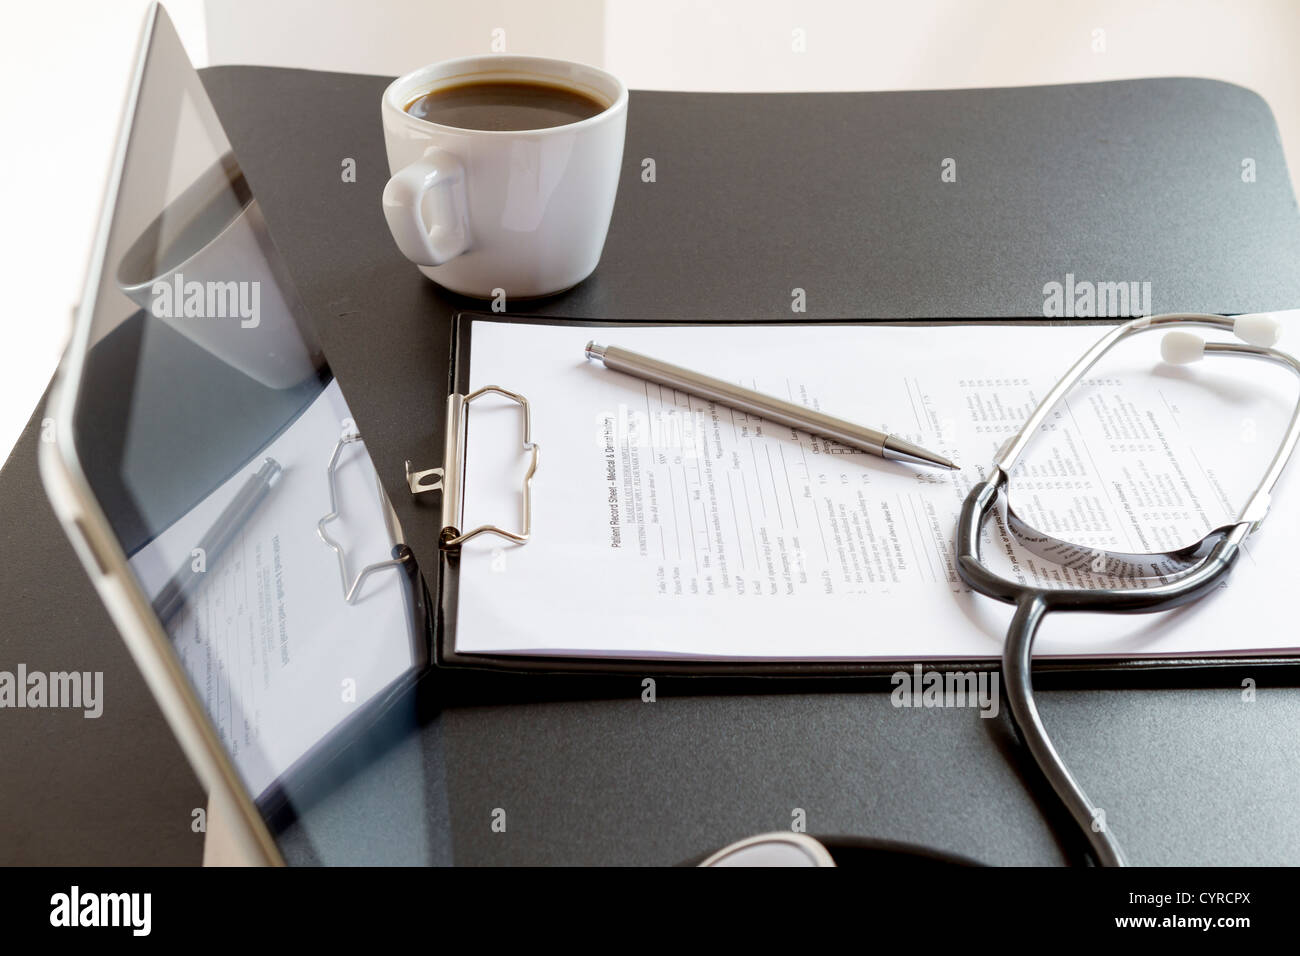 Medical record forms, stethoscope and Tablet PC on the desk - Stock Image